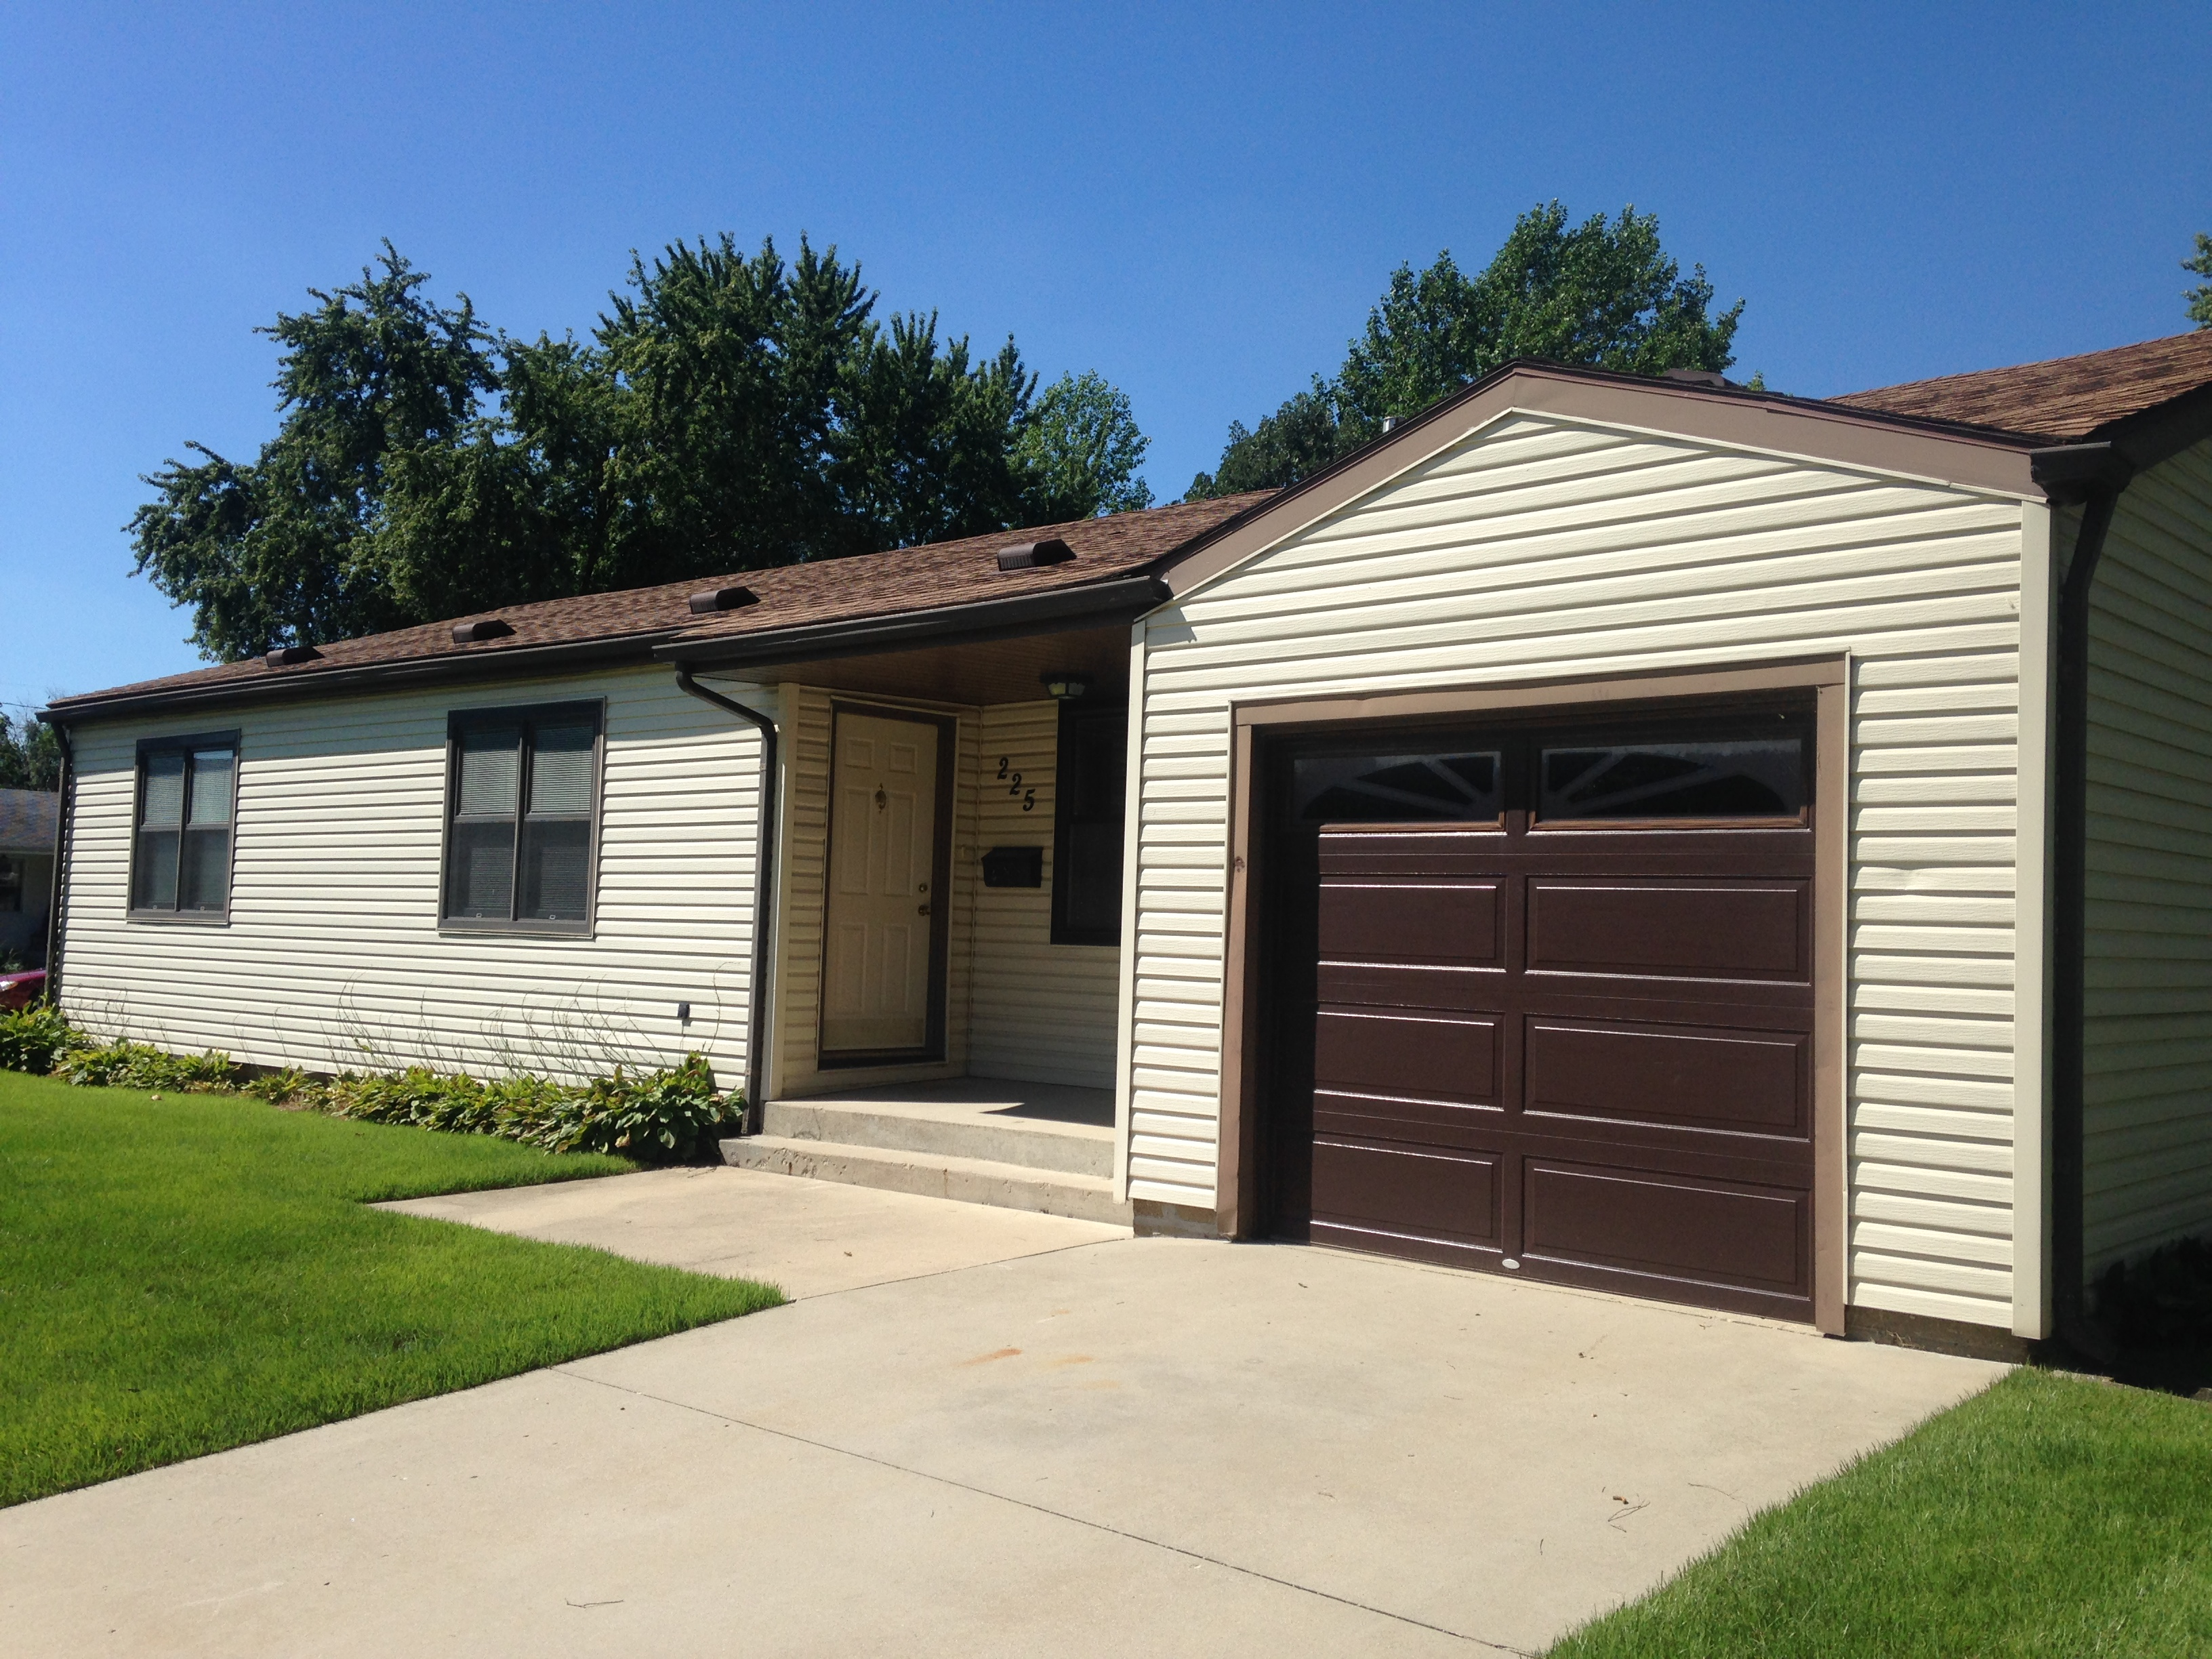 1 Bedroom Apartments Bloomington In Meadowbrook 1 Car Attached Garage Denbesten Real Estate